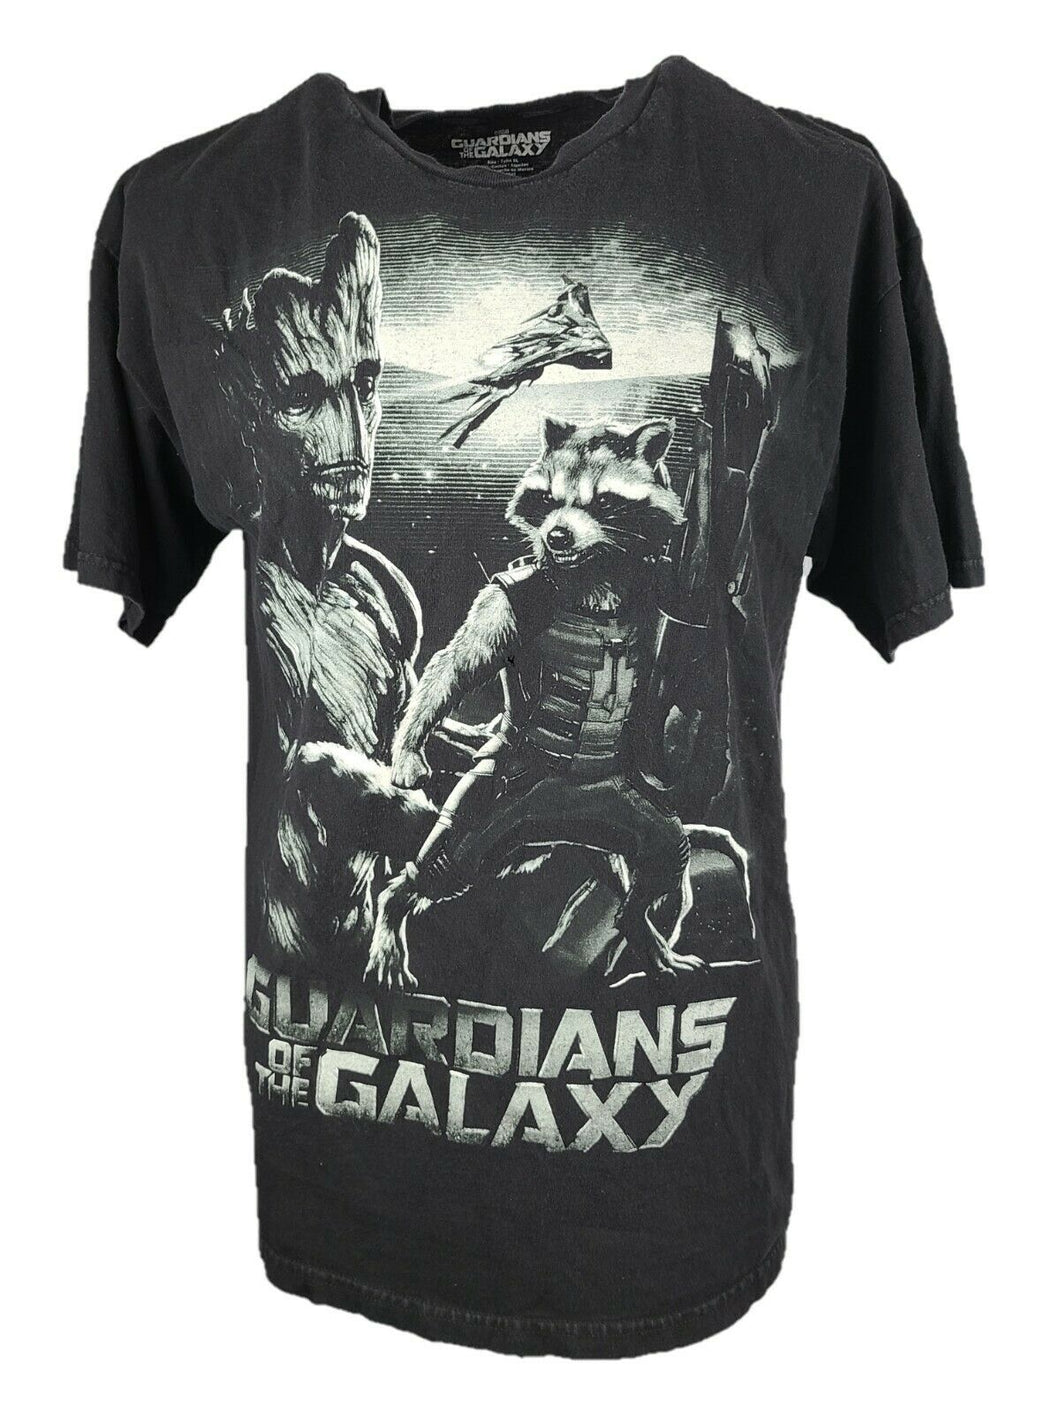 Marvel Guardian Of The Galaxy Graphic Shirt Size XL Color Black 100% Cotton